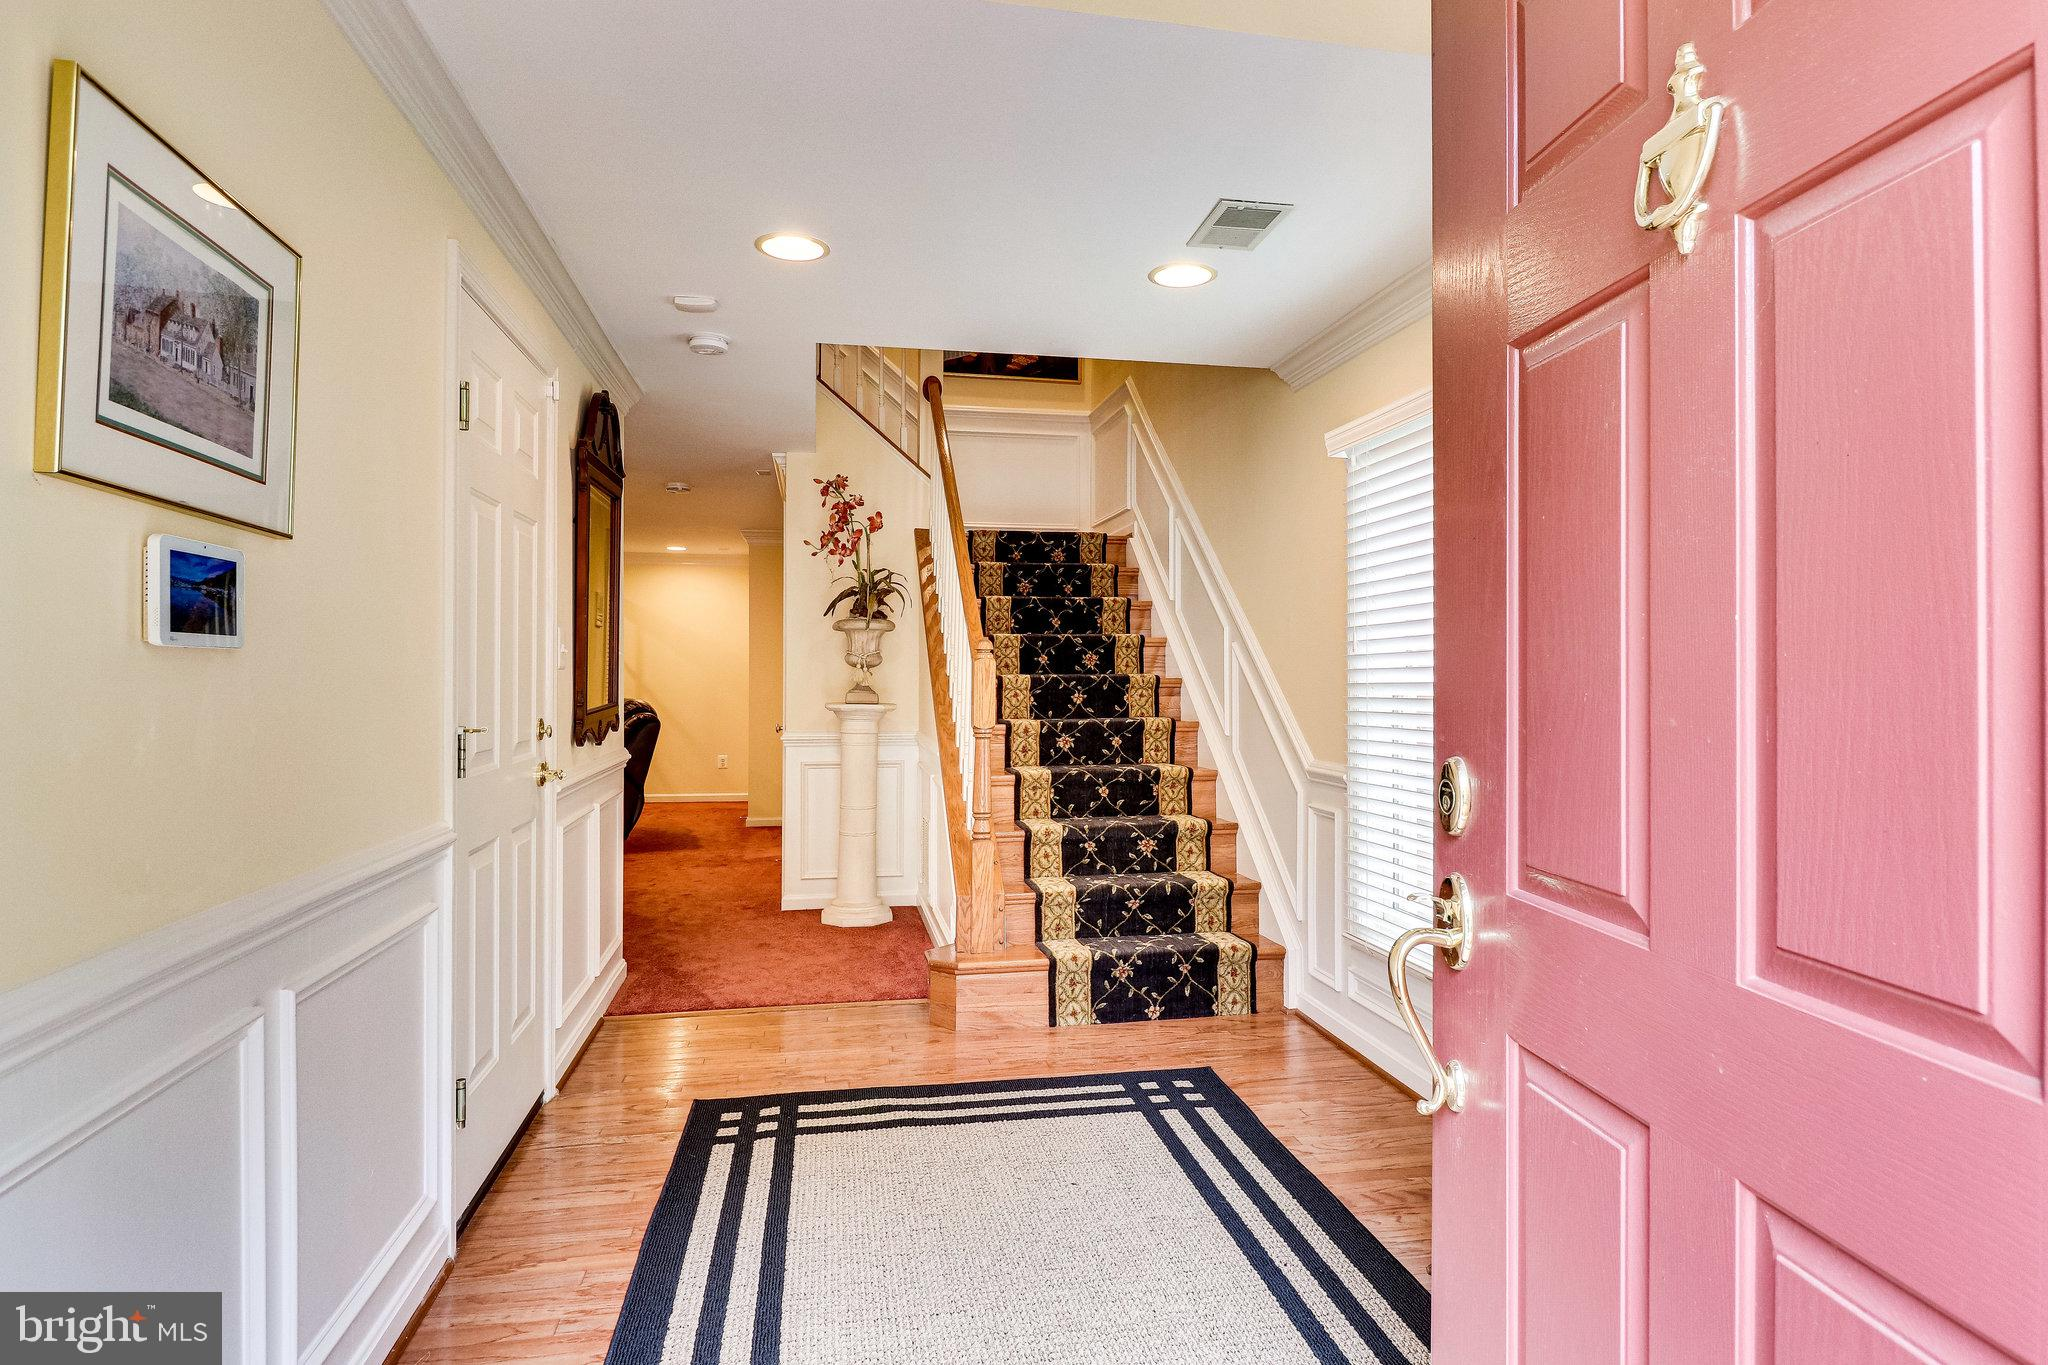 Gorgeous, bright townhome in desirable random hills cluster!!! This beautiful freshly painted home h